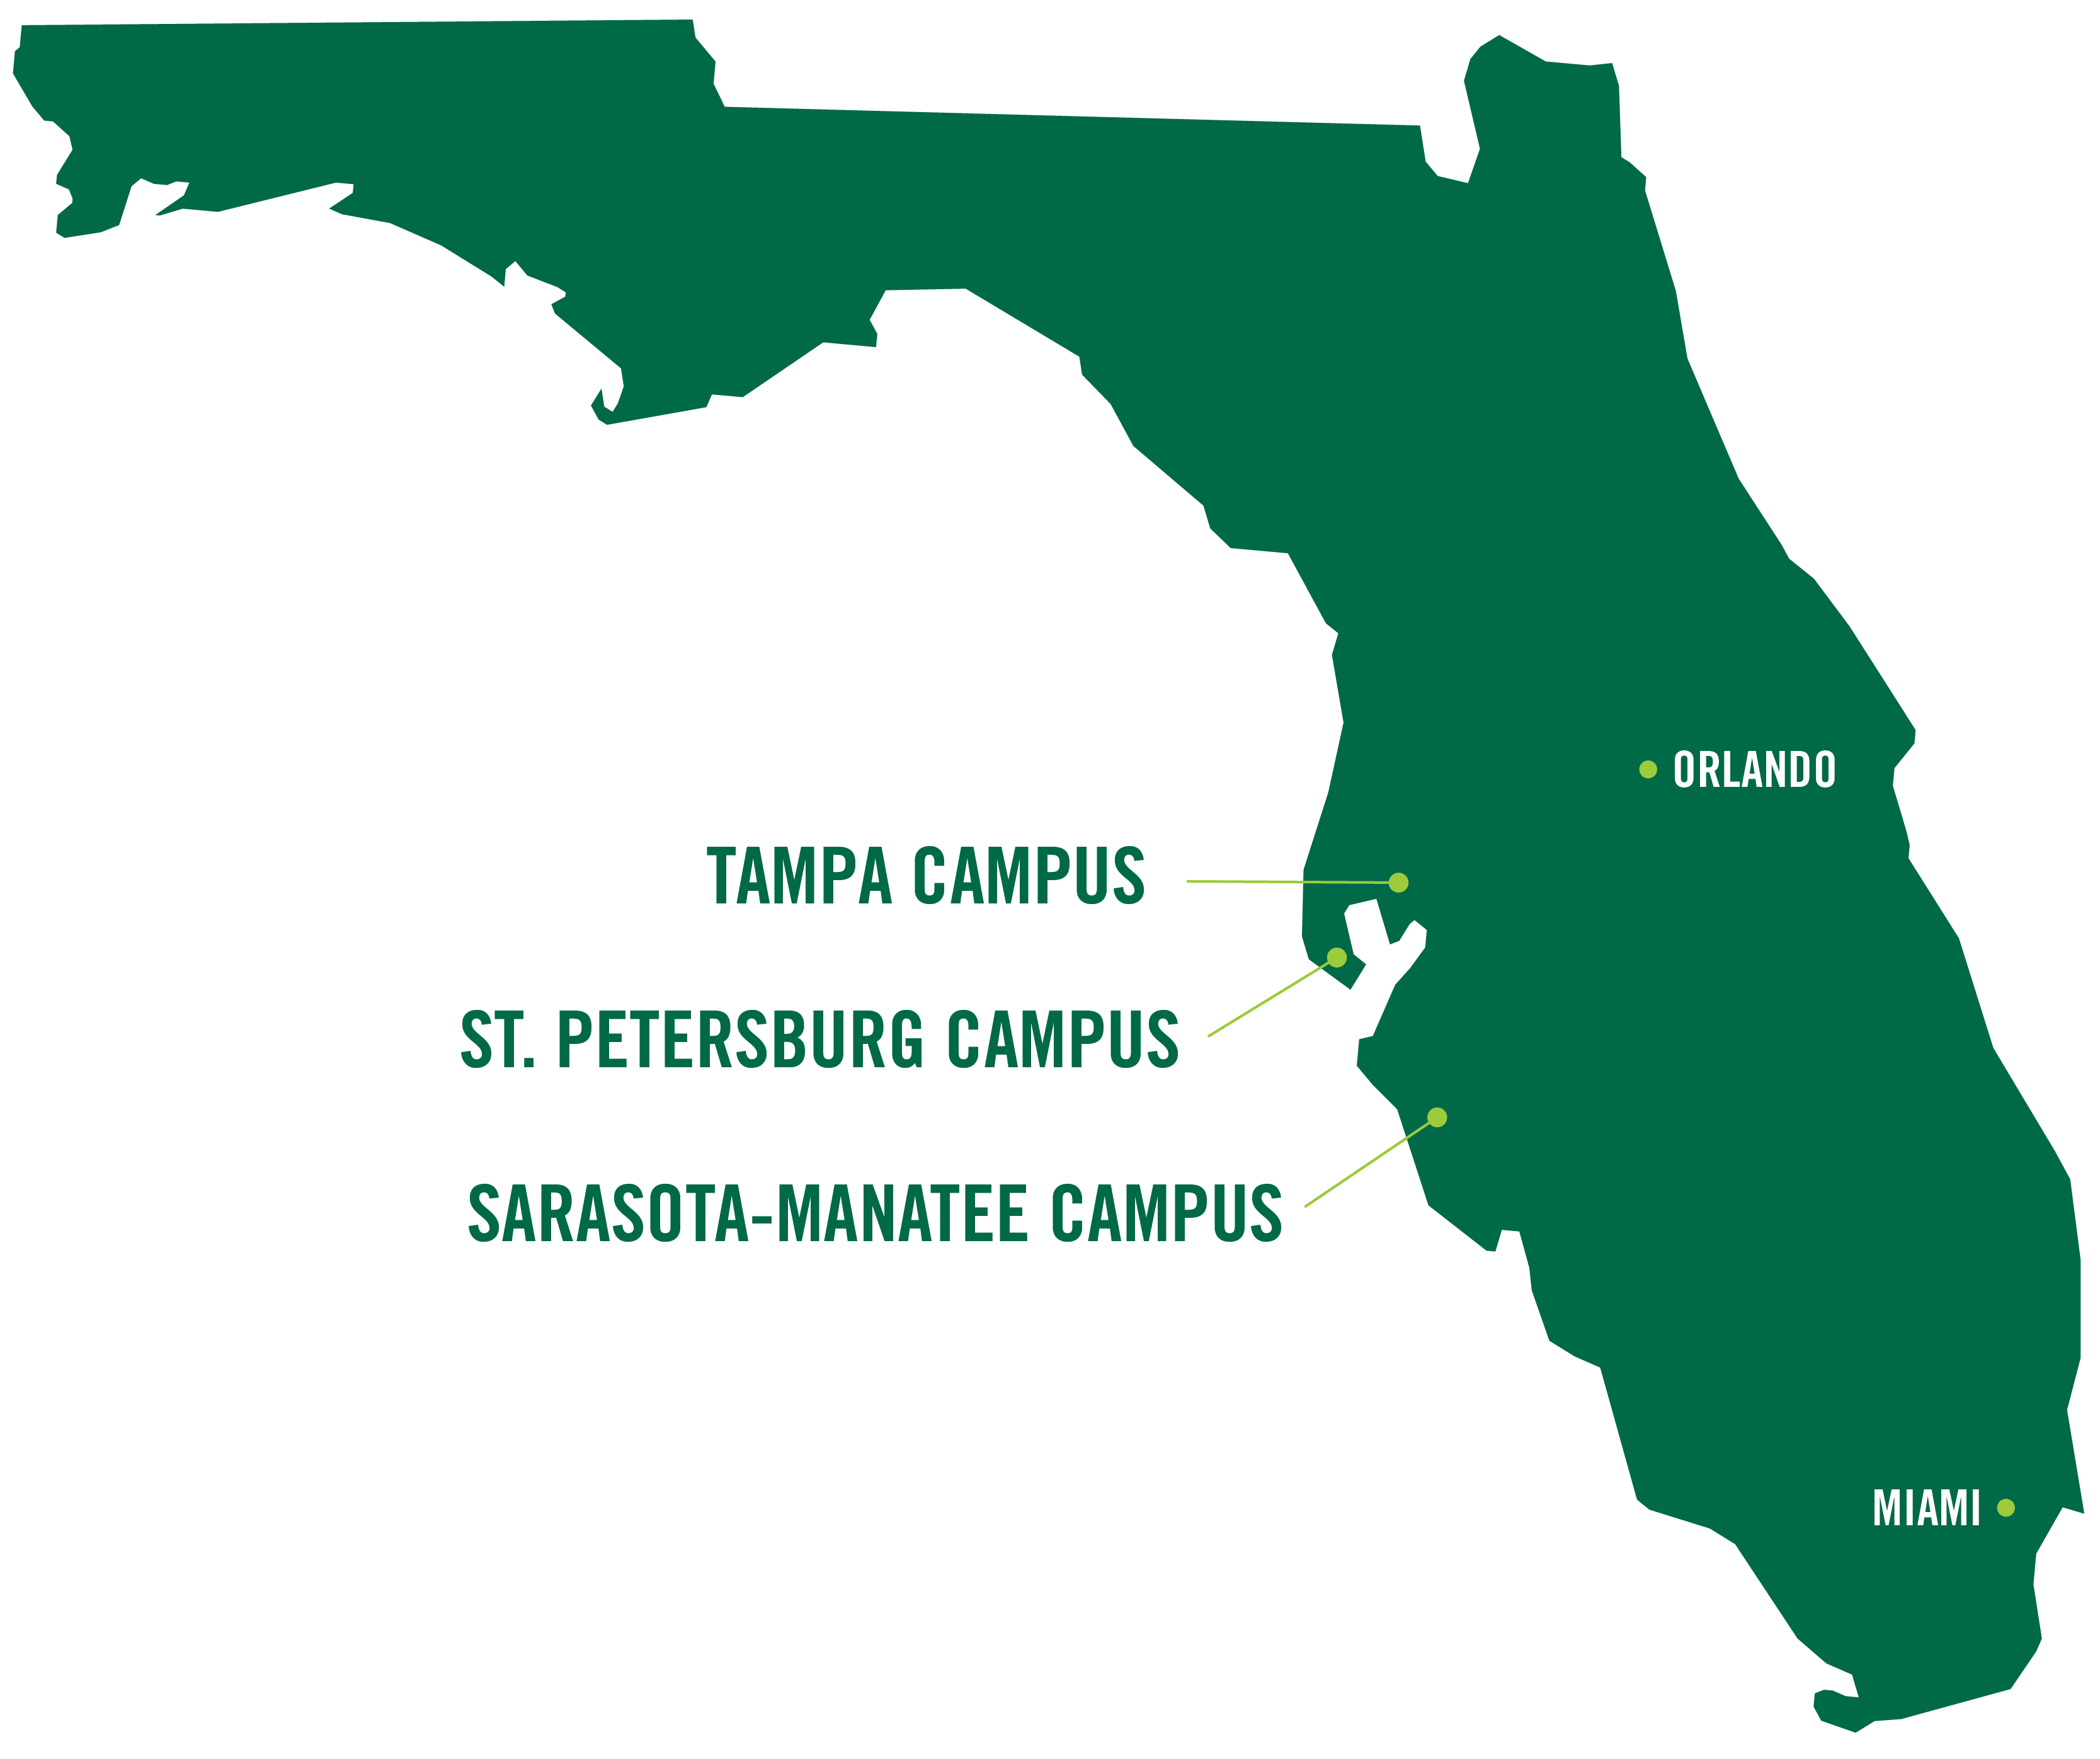 USF campus locations